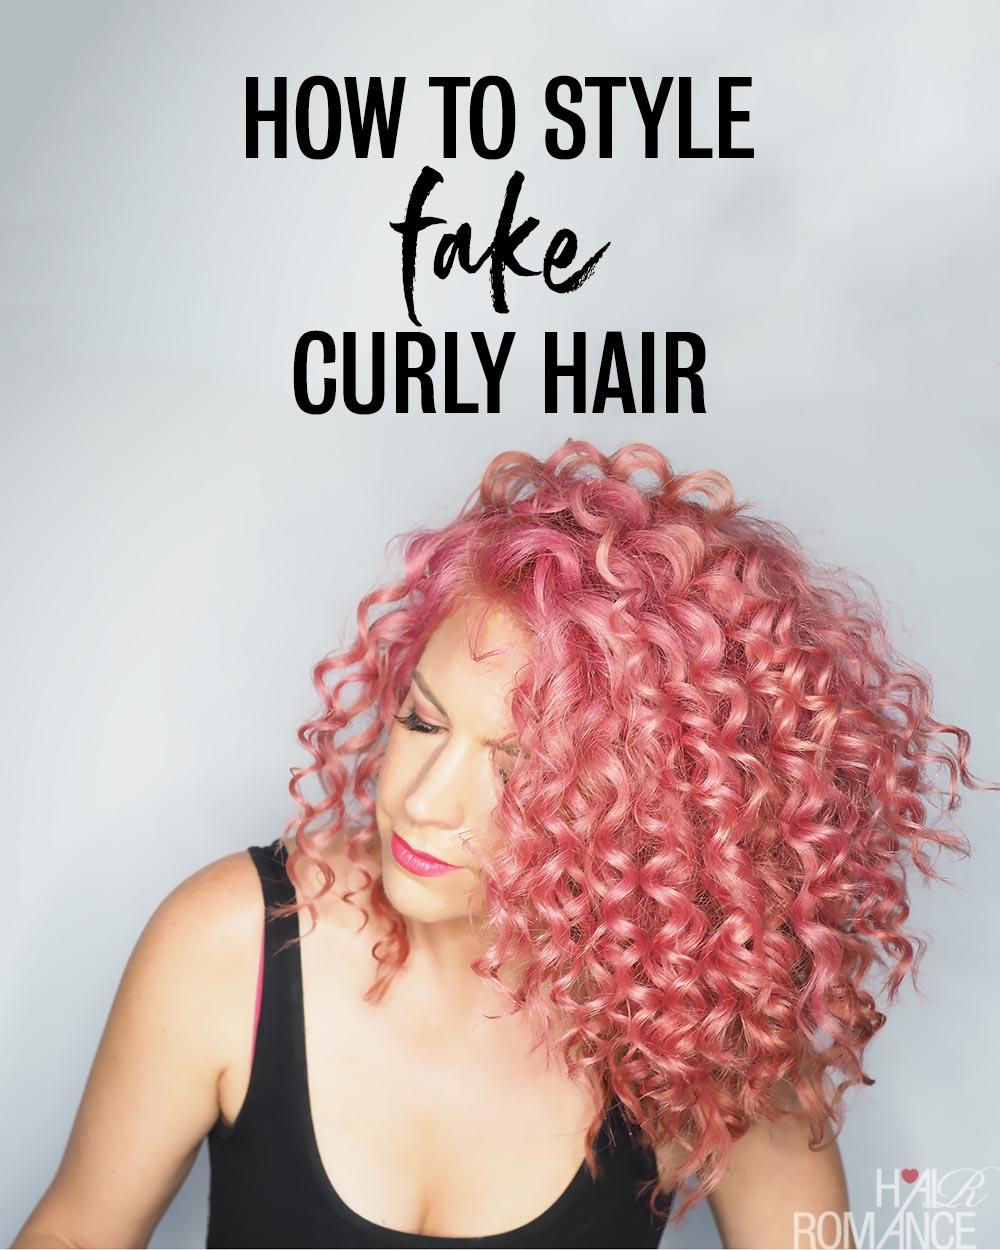 Fake Curls How To Get Hair That Looks Naturally Curly Hair Romance